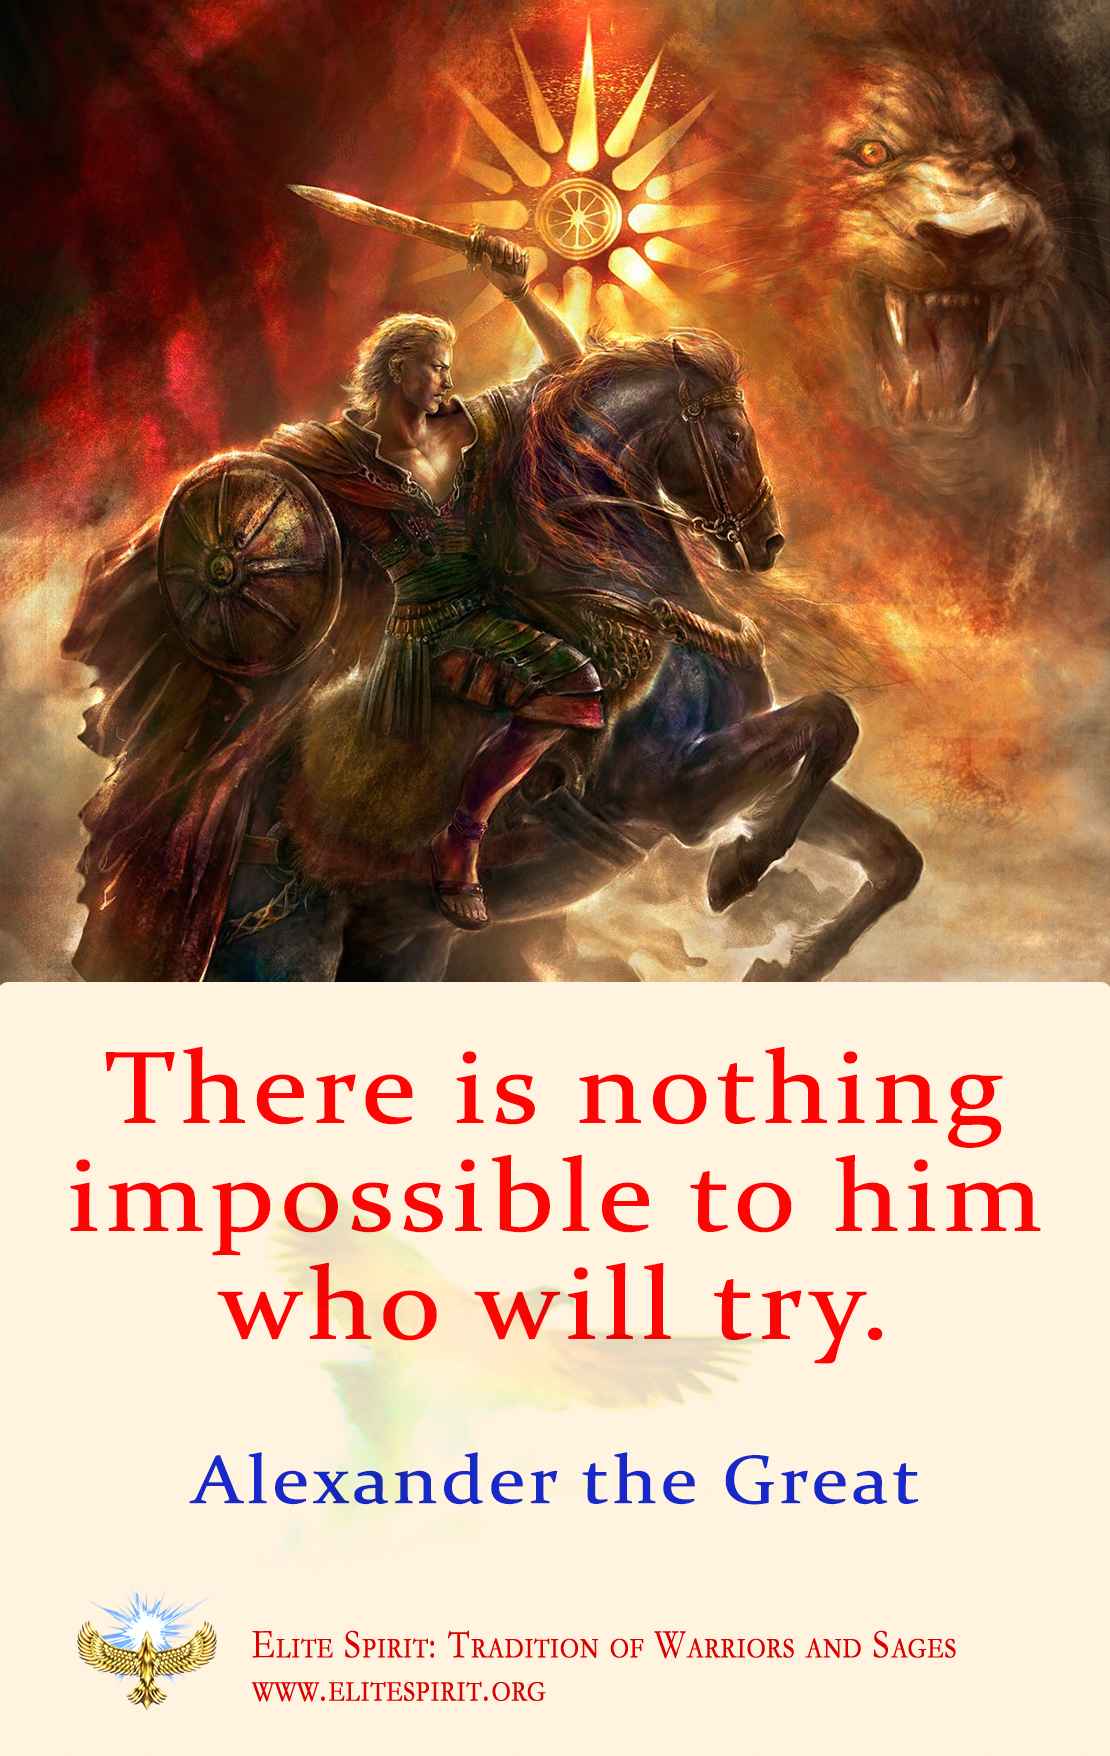 Alexander the Great Quote Saying Art in 2019